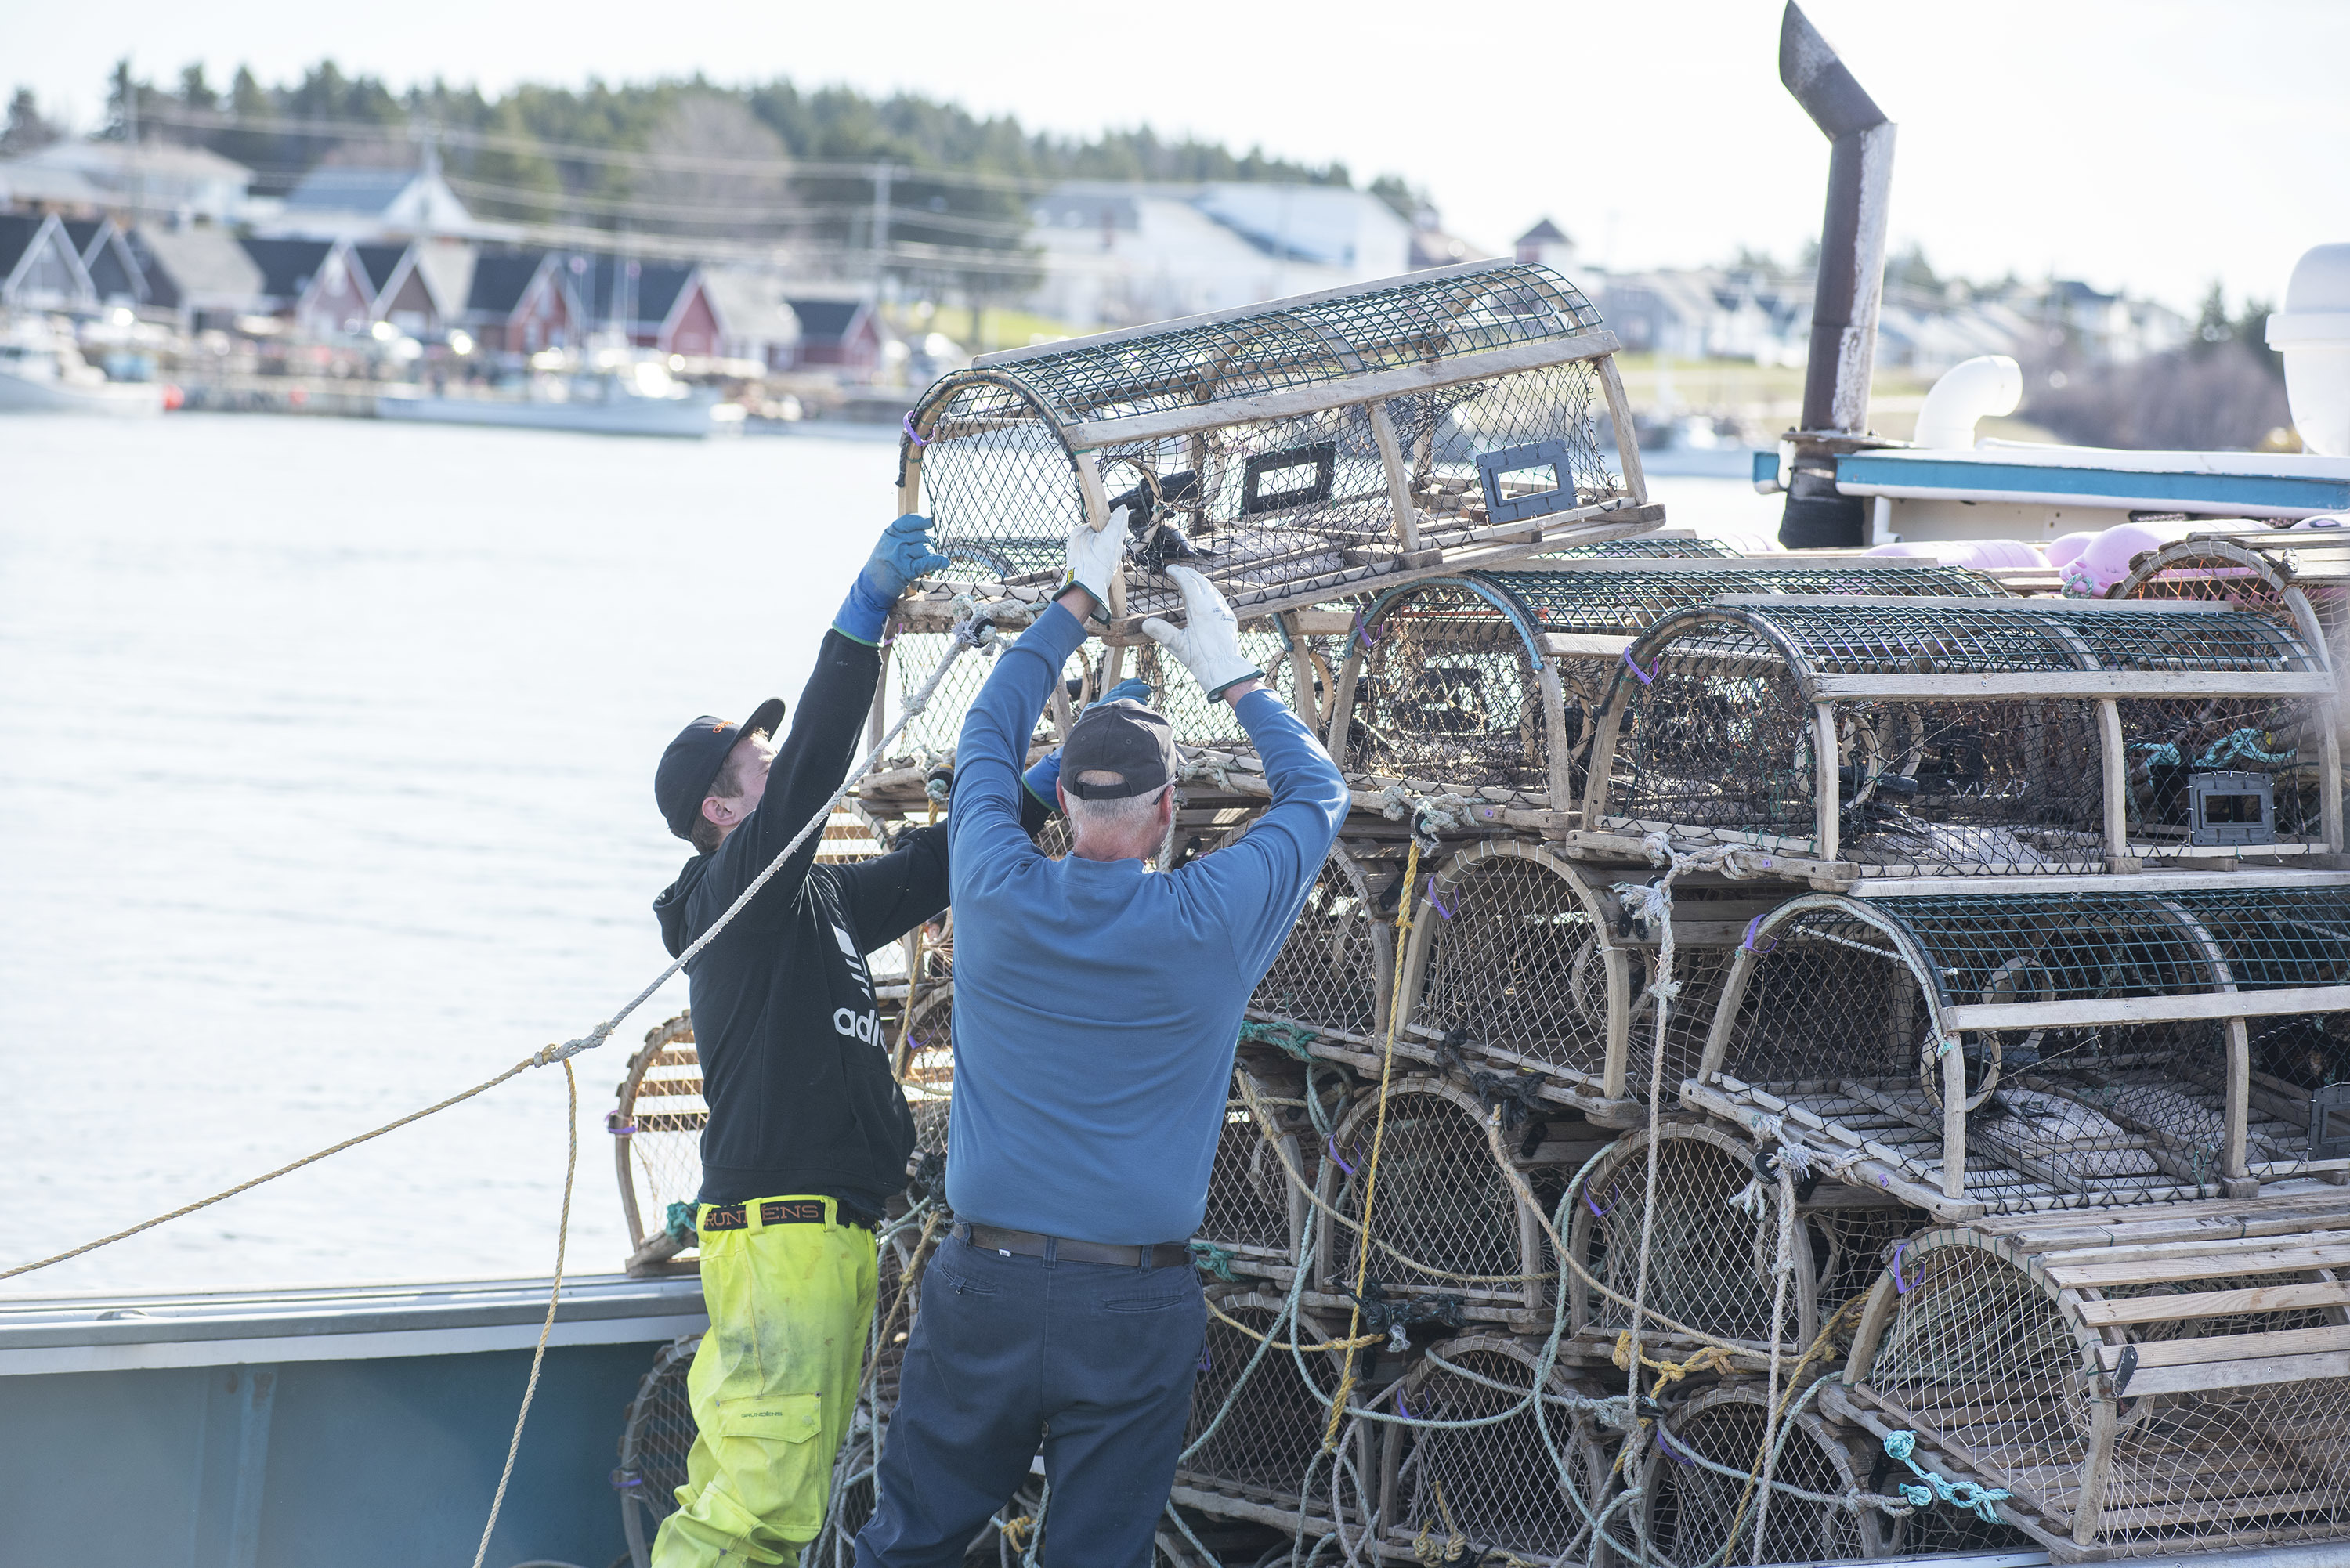 The second and last load of traps for the day is being loaded onto a boat. (Brian McInnis)